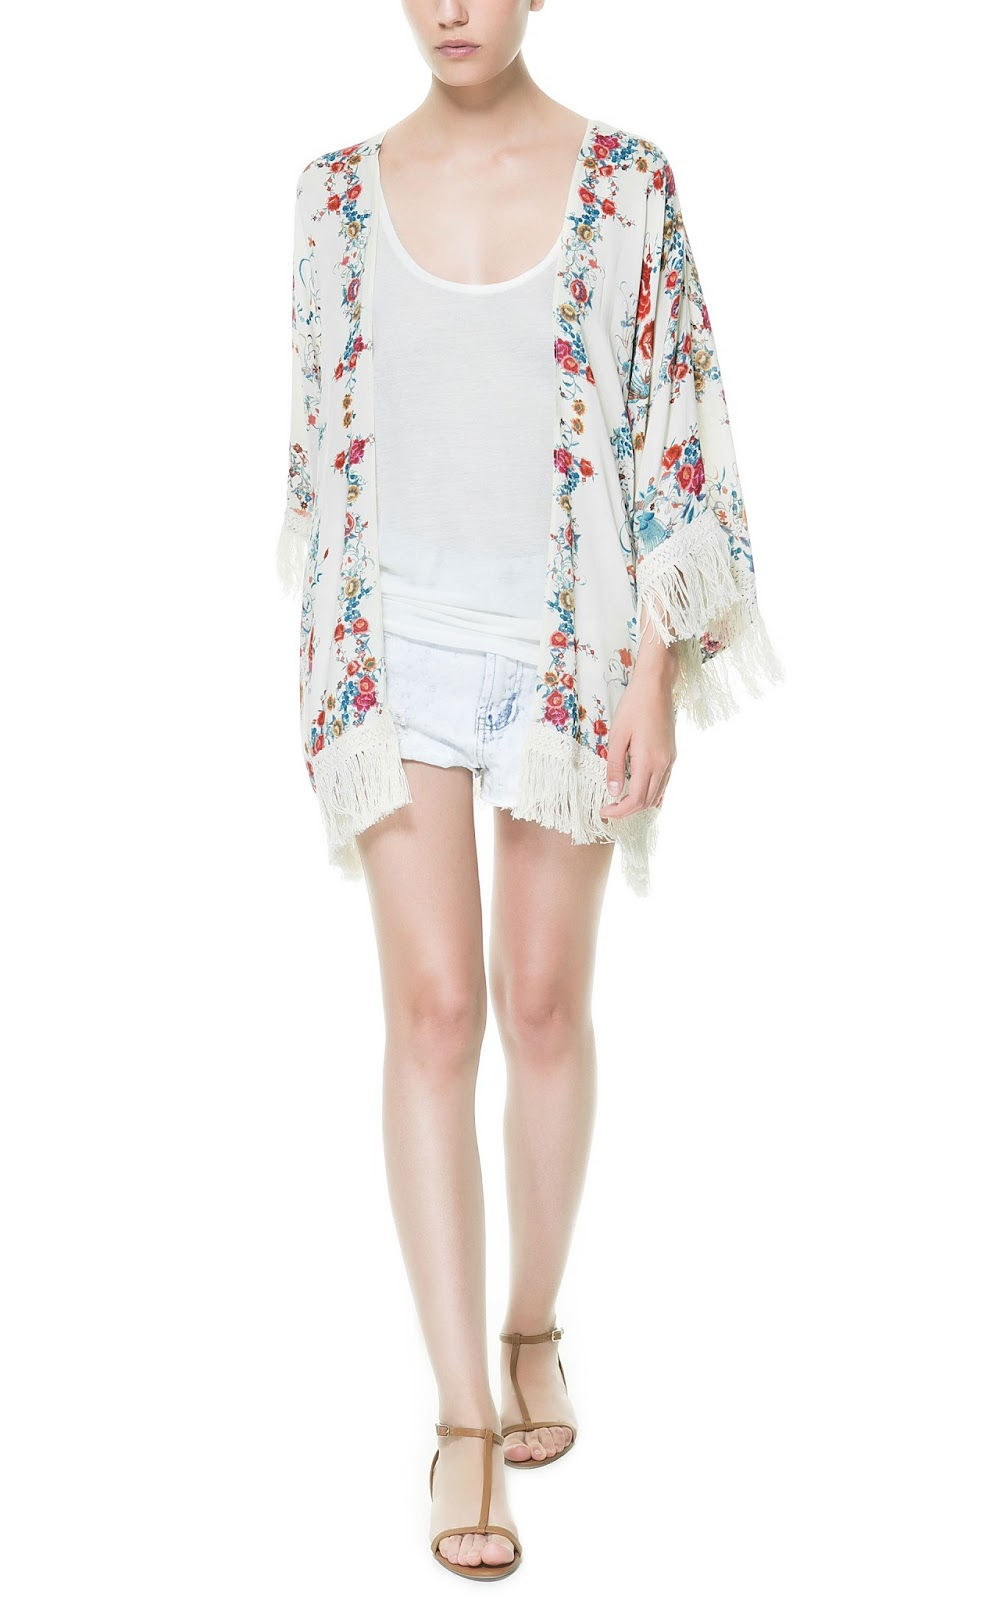 ZARA NEW COLLECTION 2013. FLORAL JACKET KIMONO WITH ...